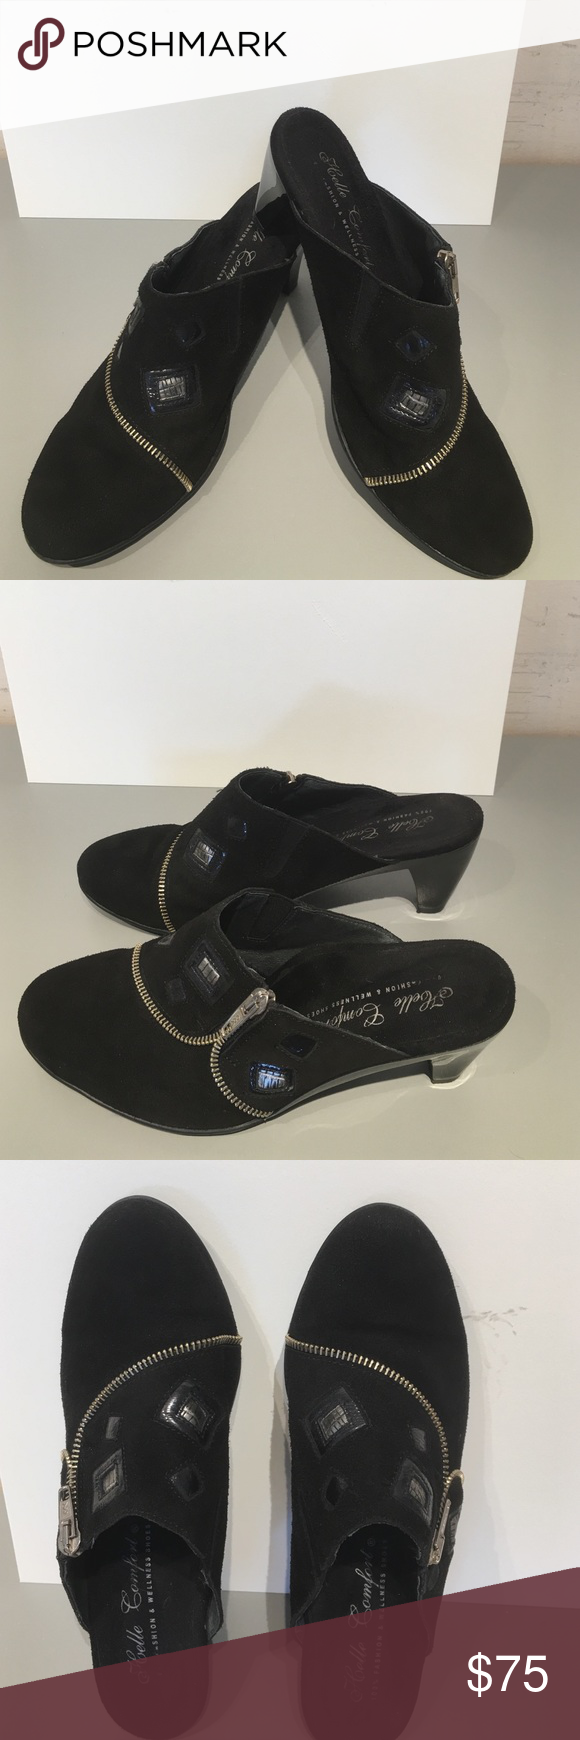 fashion shoes helle spain comfort comforter wellness mules pin